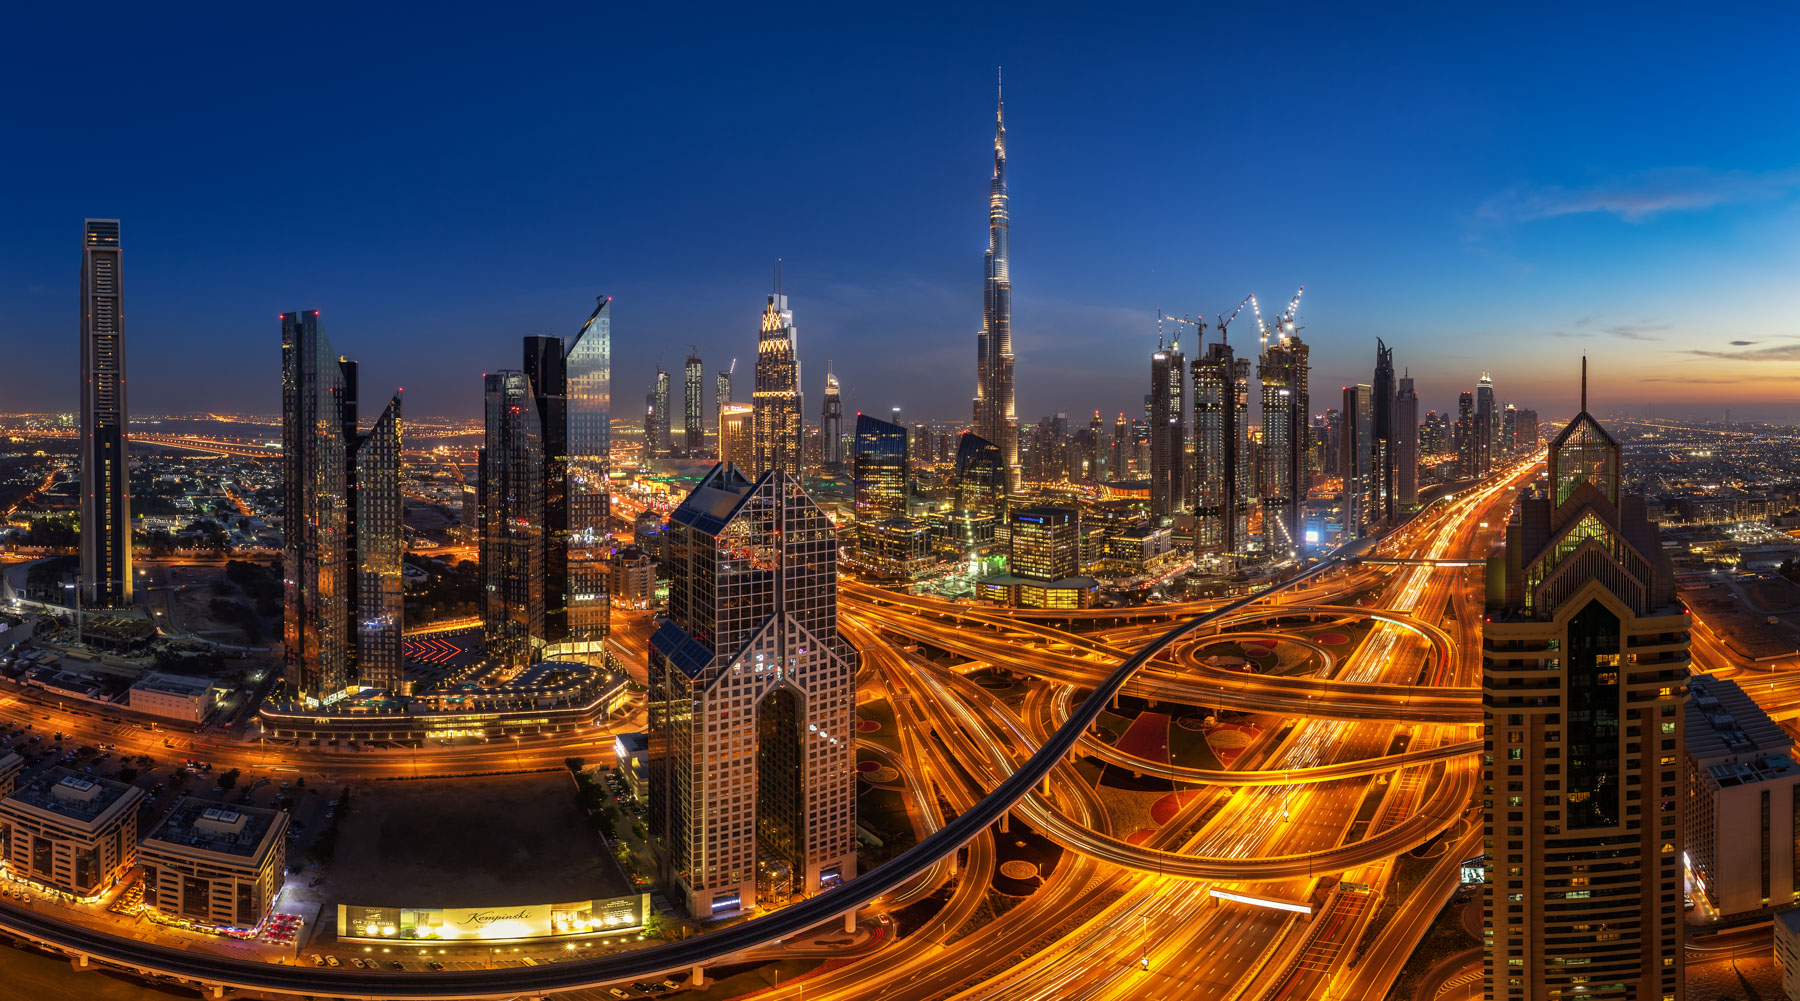 A perfect Skyline Shot in Dubai – City Photography